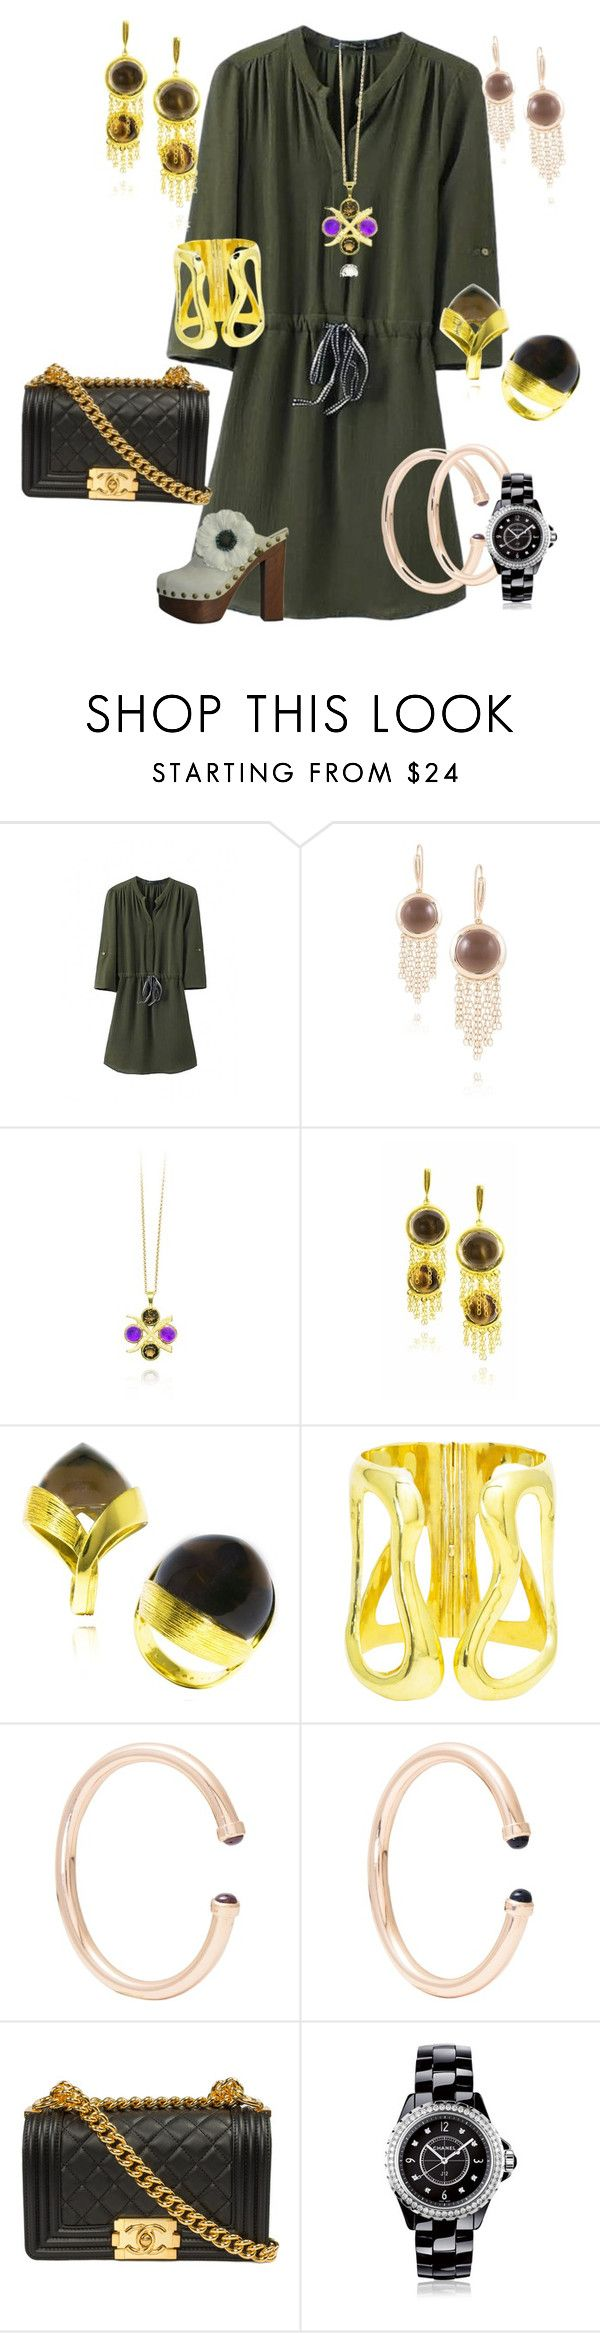 """Boho with glitz"" by mateobrown-jewellery on Polyvore featuring Chanel"